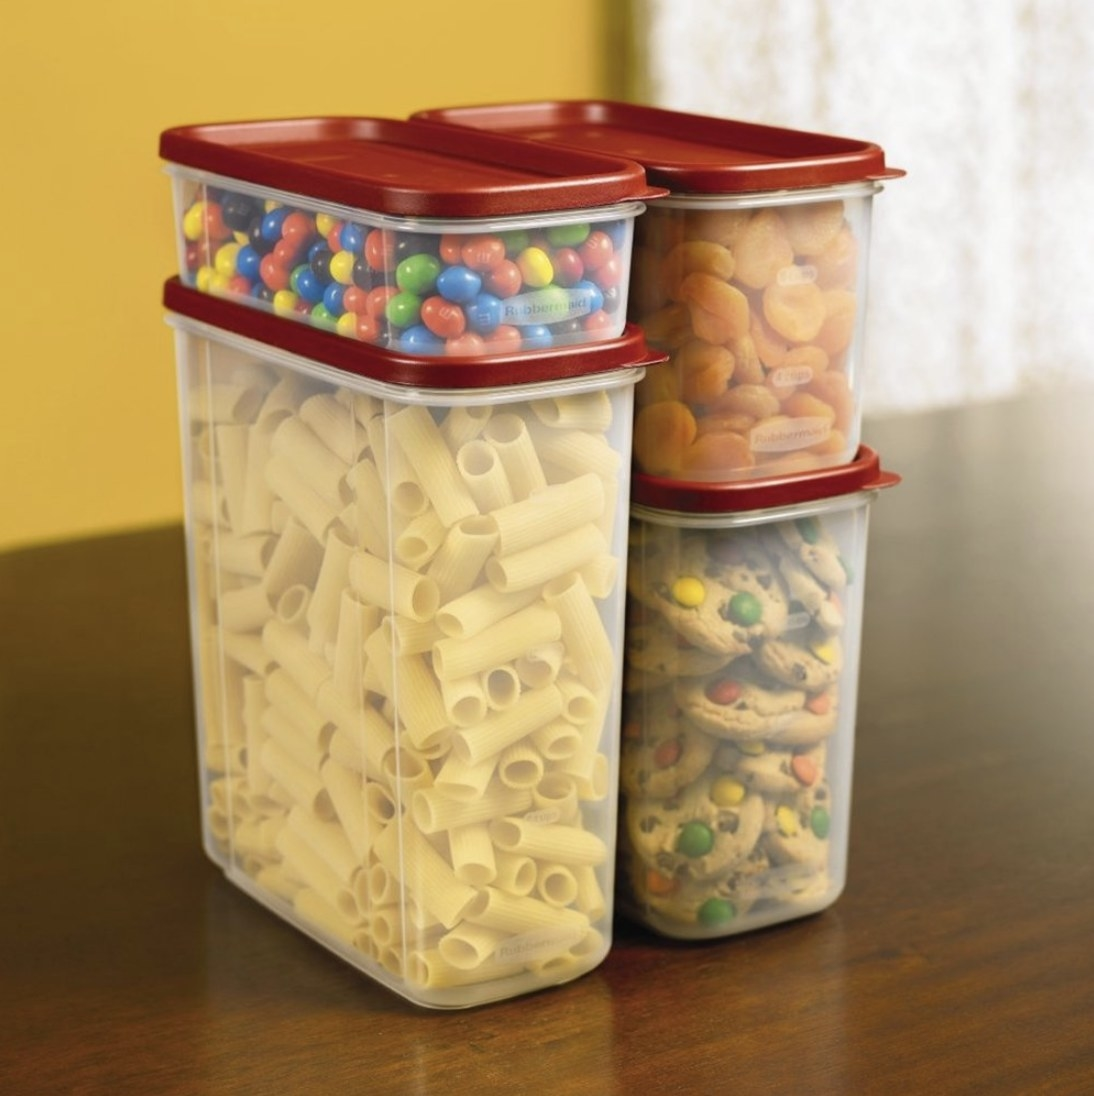 Four clear containers of varying sizes stacked with food inside